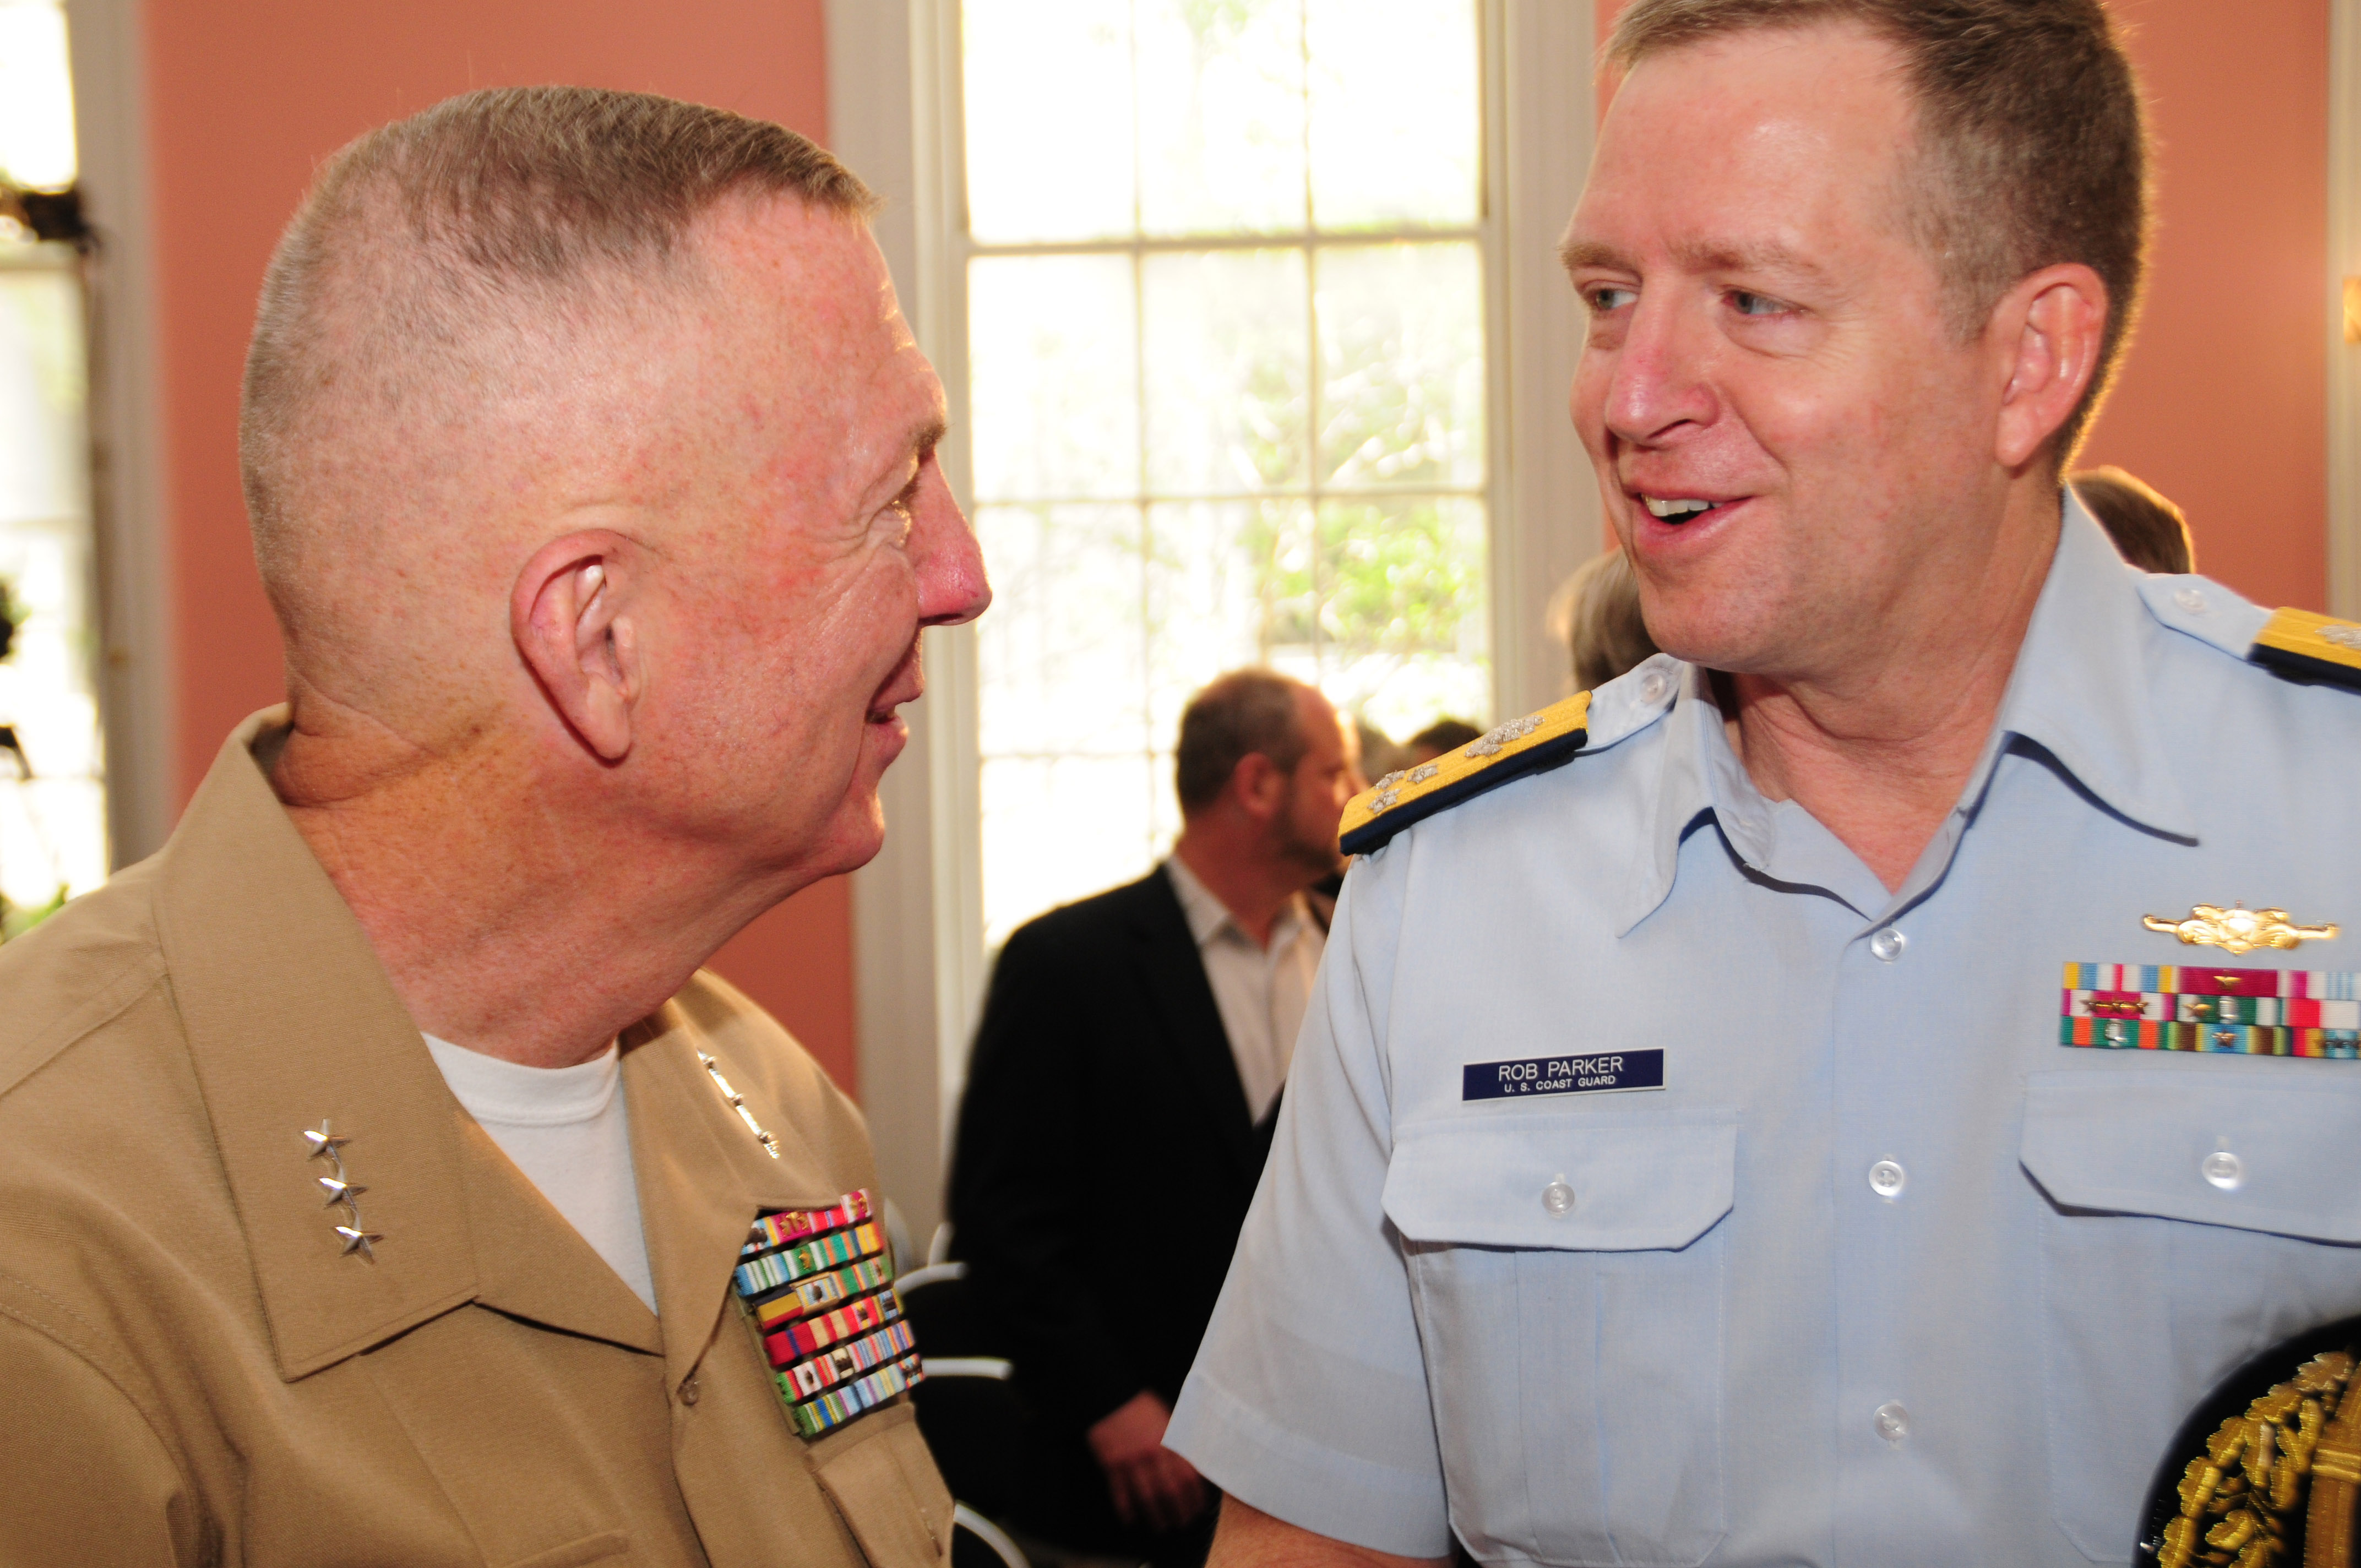 NEW ORLEANS - Vice Adm. Robert Parker (right), commander of Coast Guard Atlantic Area, chats with Lt. Gen. Steven Hummer, commander of Marine Forces Reserve and Marine Forces North, at the conclusion of a mayoral welcome for participants and guests of NOLA Navy Week at Gallier Hall, April 18, 2012. Parker, the commander of the Eighth Coast Guard District and the commanding officer of the Coast Guard Barque Eagle attended the event for the Bicentennial of the War of 1812. U.S. Coast Guard photo by Petty Officer 2nd Class Bill Colclough.